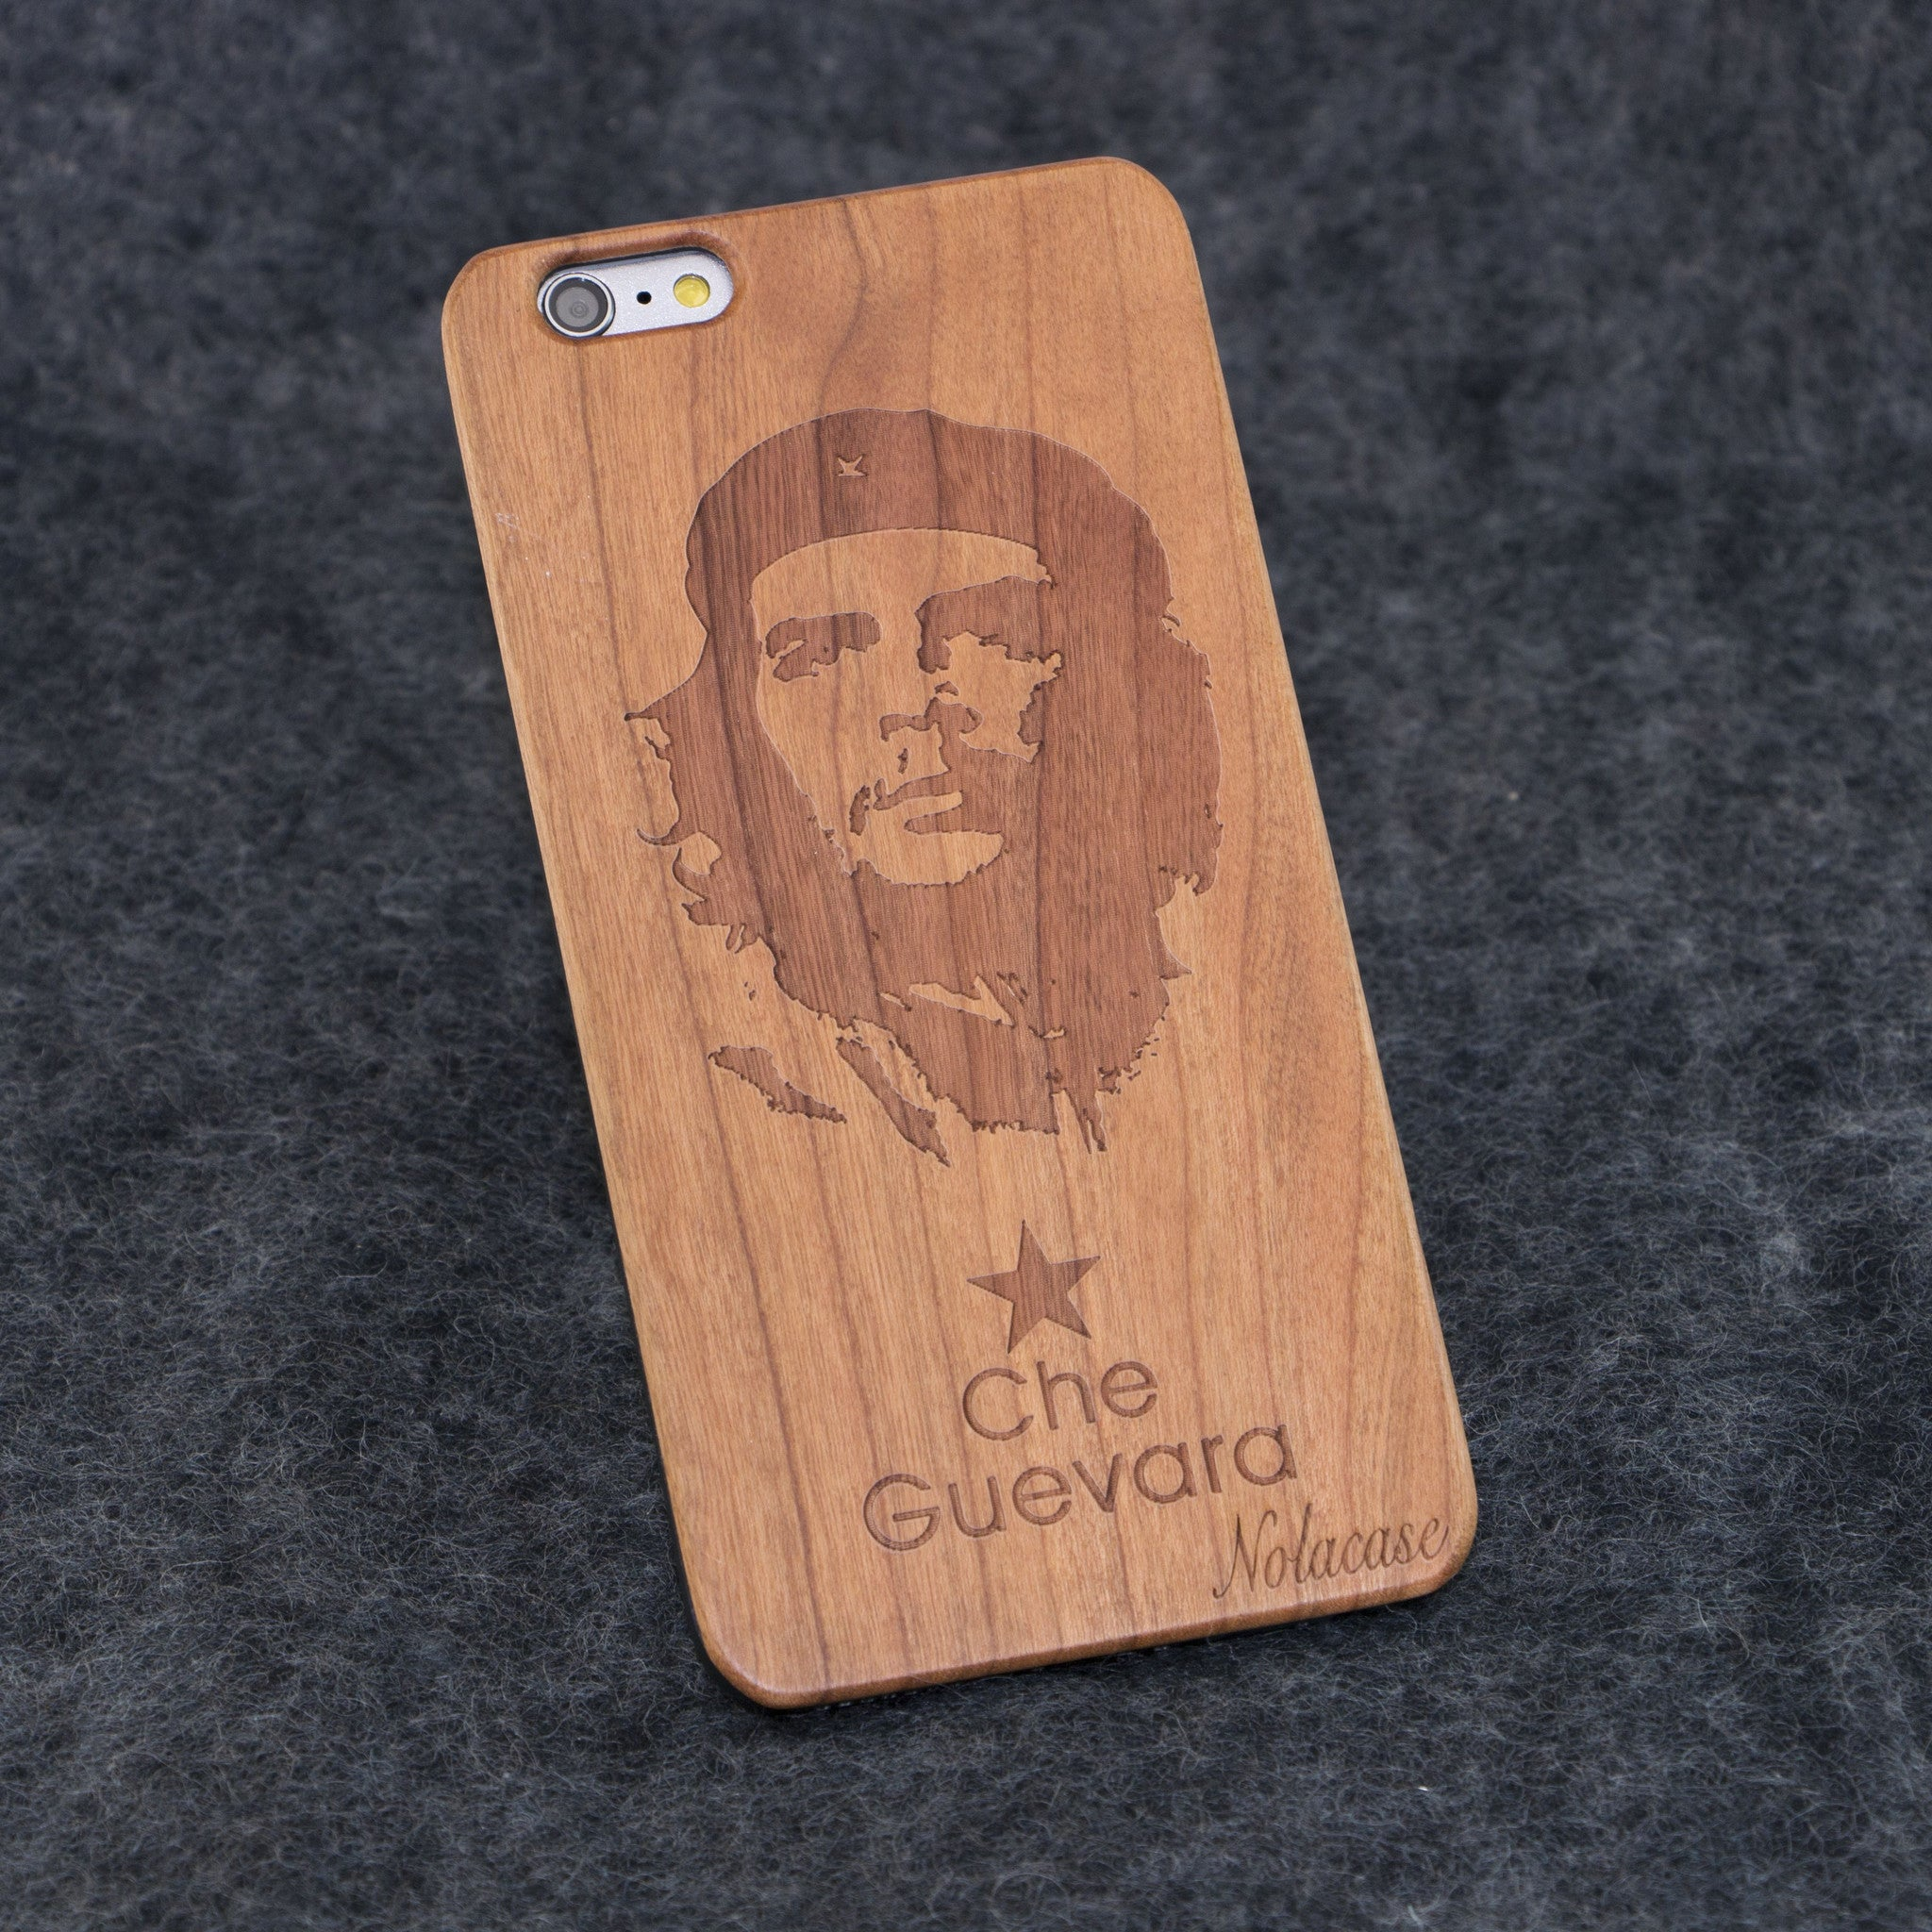 iPhone 6+ / 6S+ Che Guevara Slim Wood Case - NOLACASE - 1